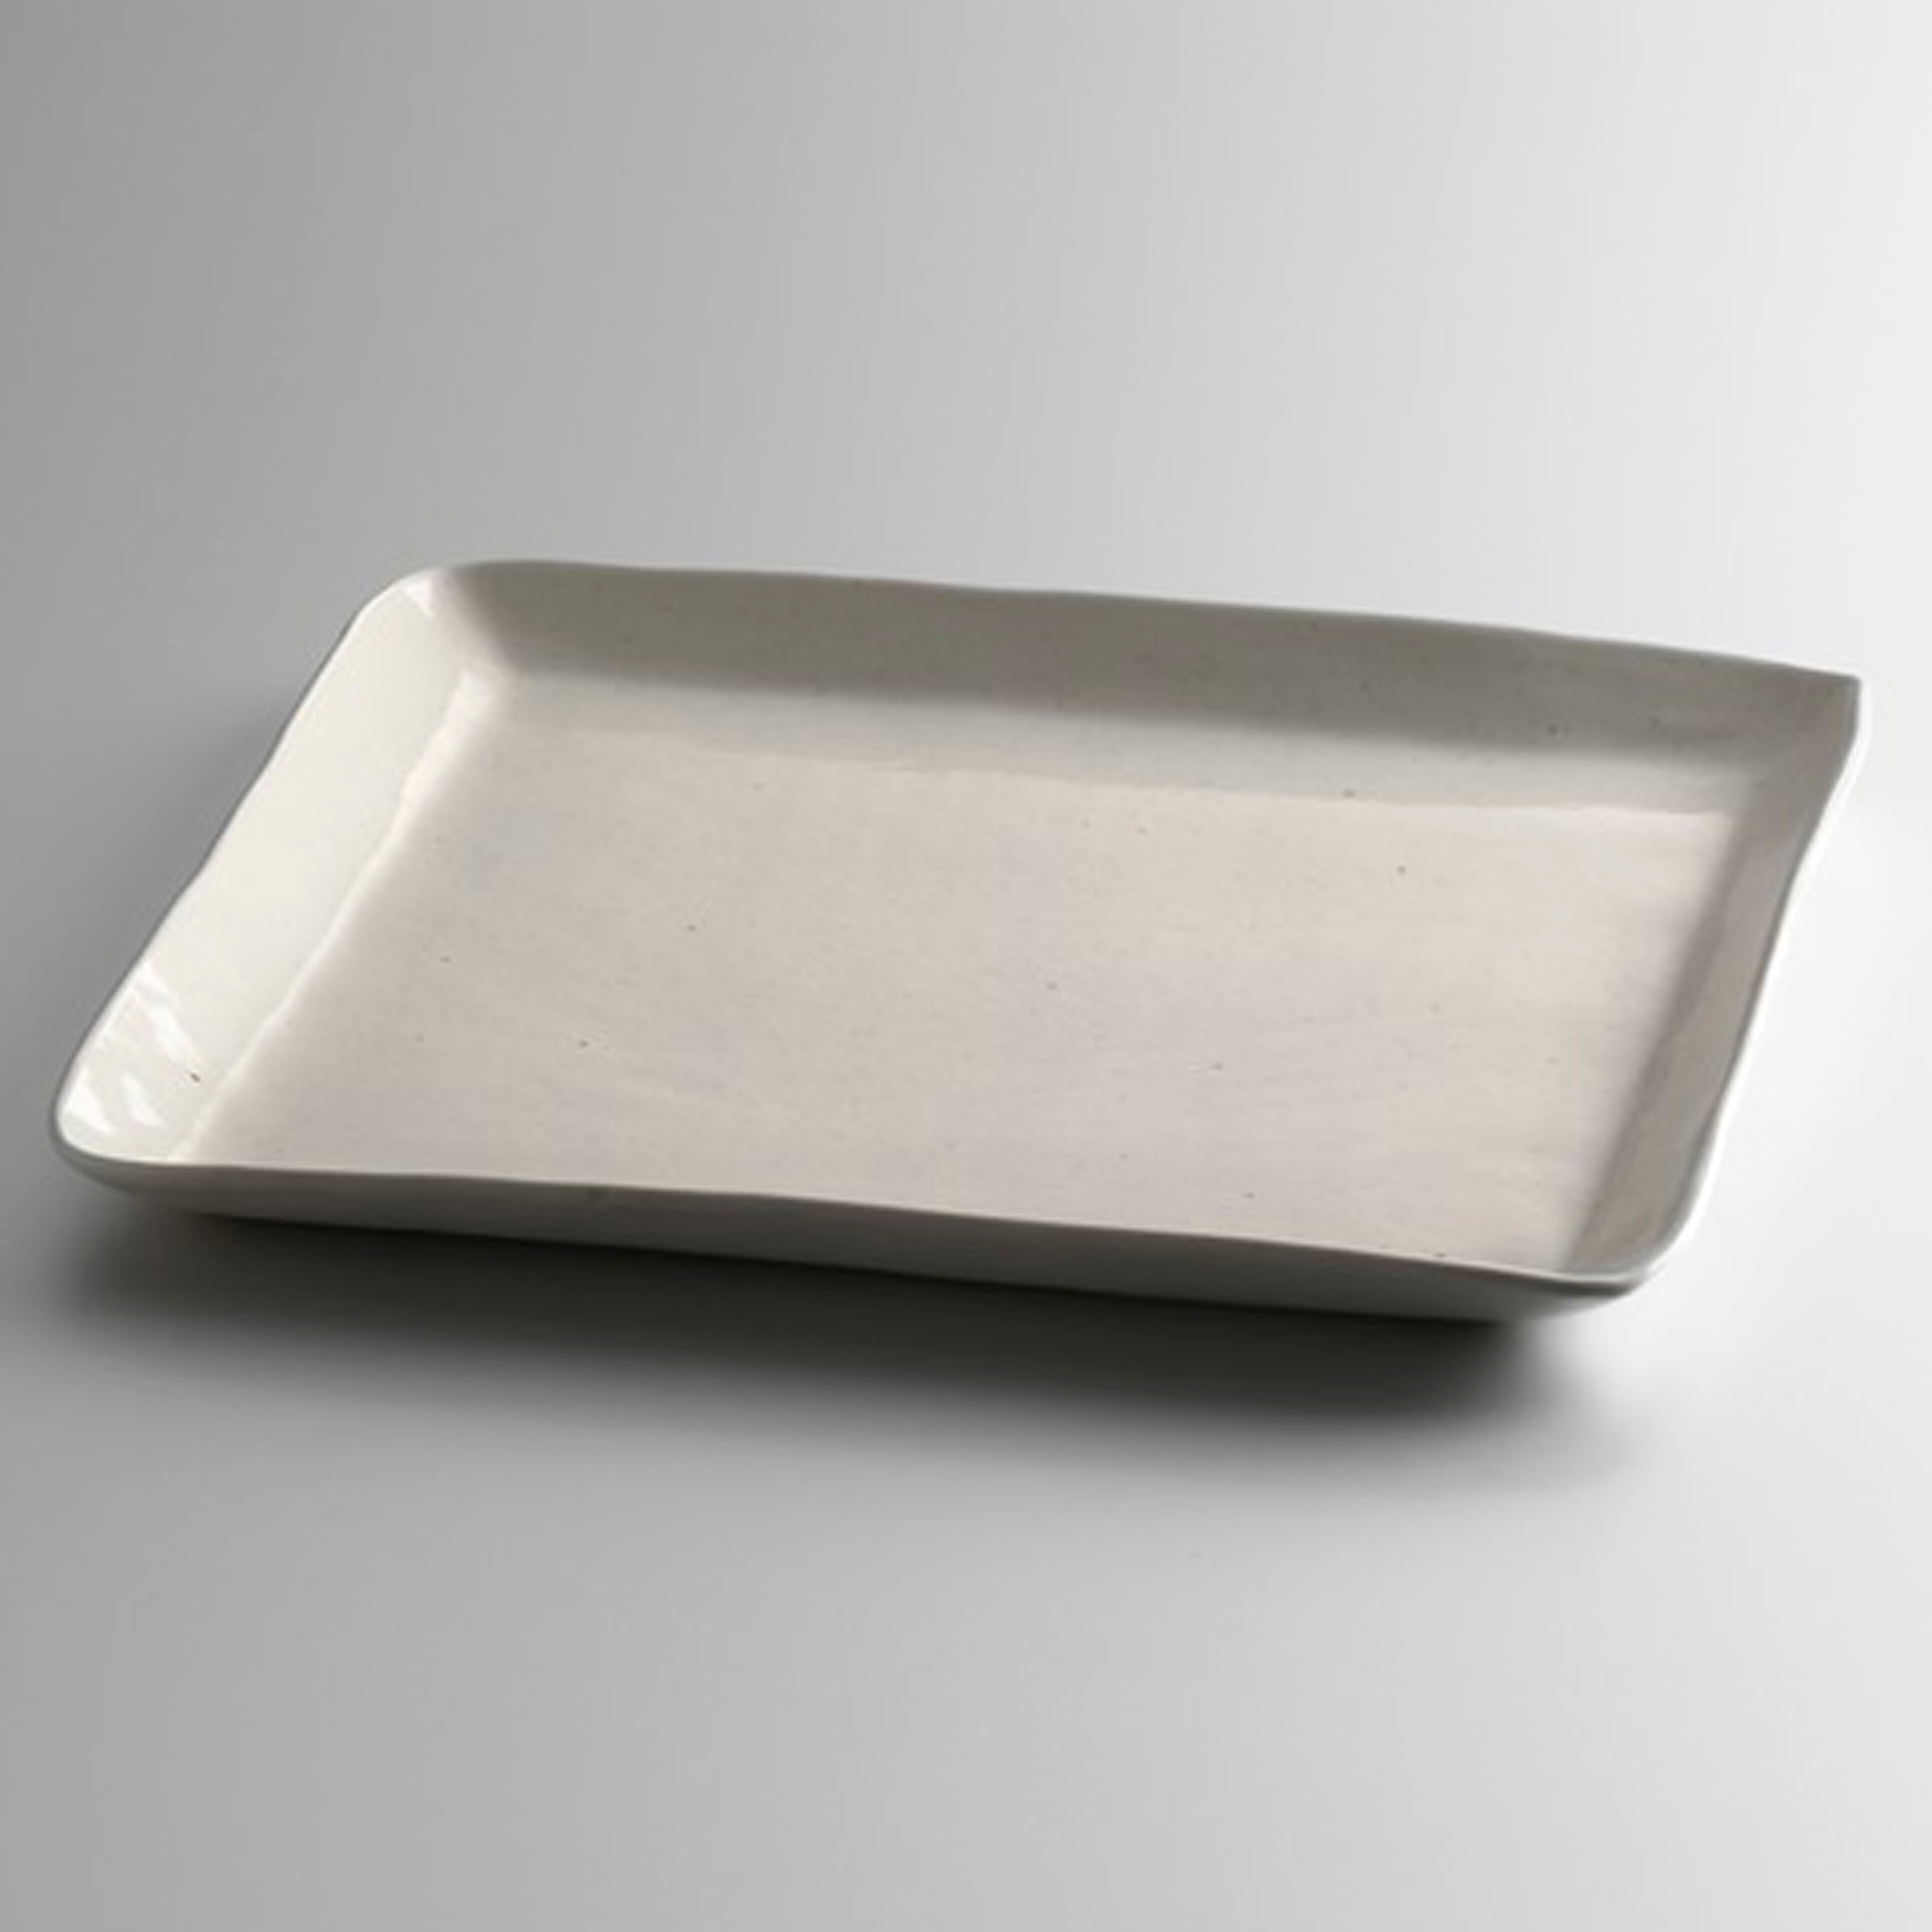 Simon Pearce Woodbury Square Dinner Plate, Birch